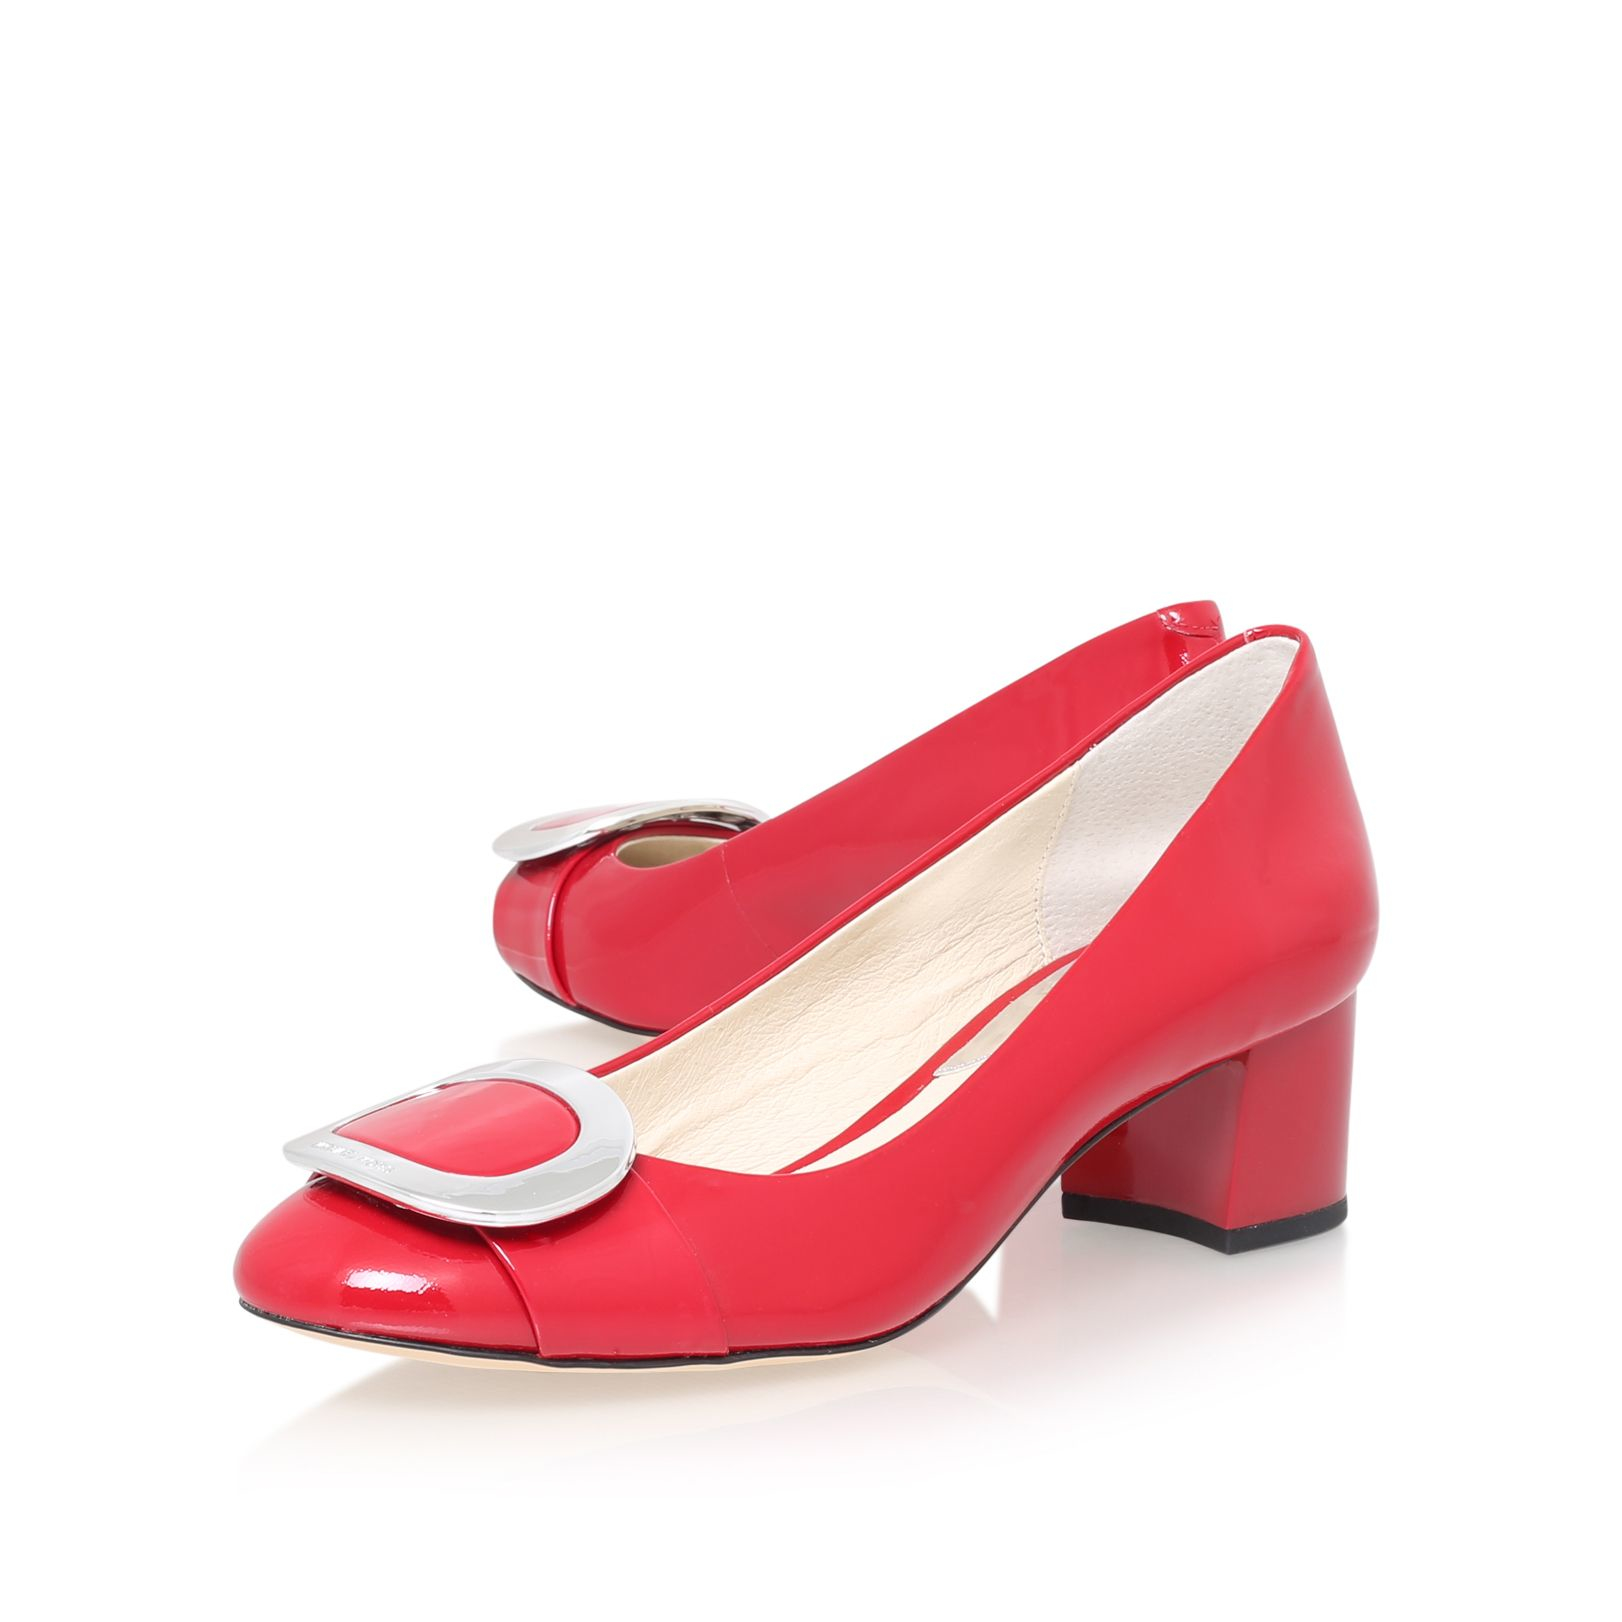 Michael kors Pauline Mid Pump High Heel Court Shoes in Red | Lyst